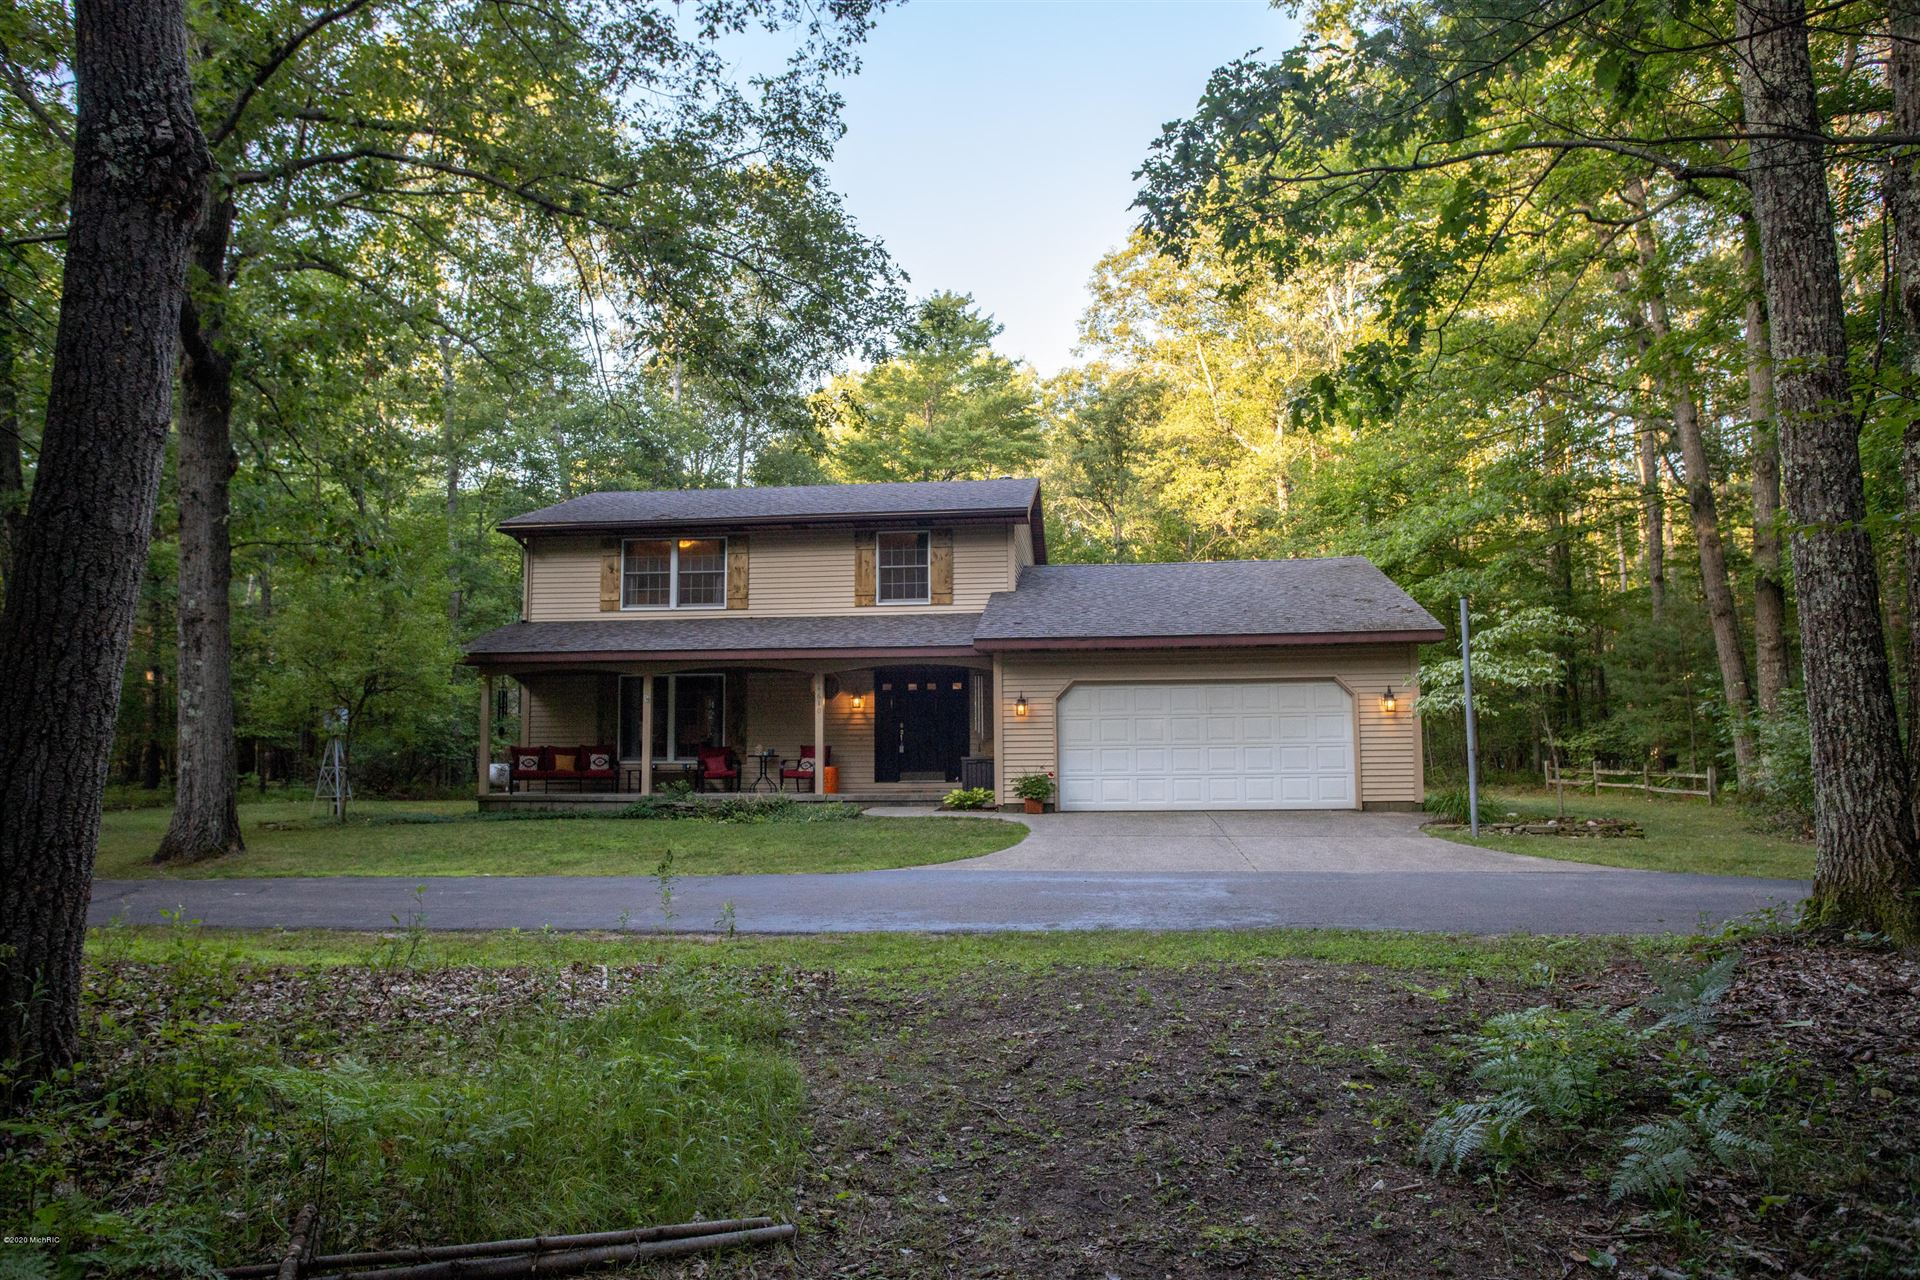 14610 Wigwam Lane, Big Rapids, MI 49307 - #: 20015302